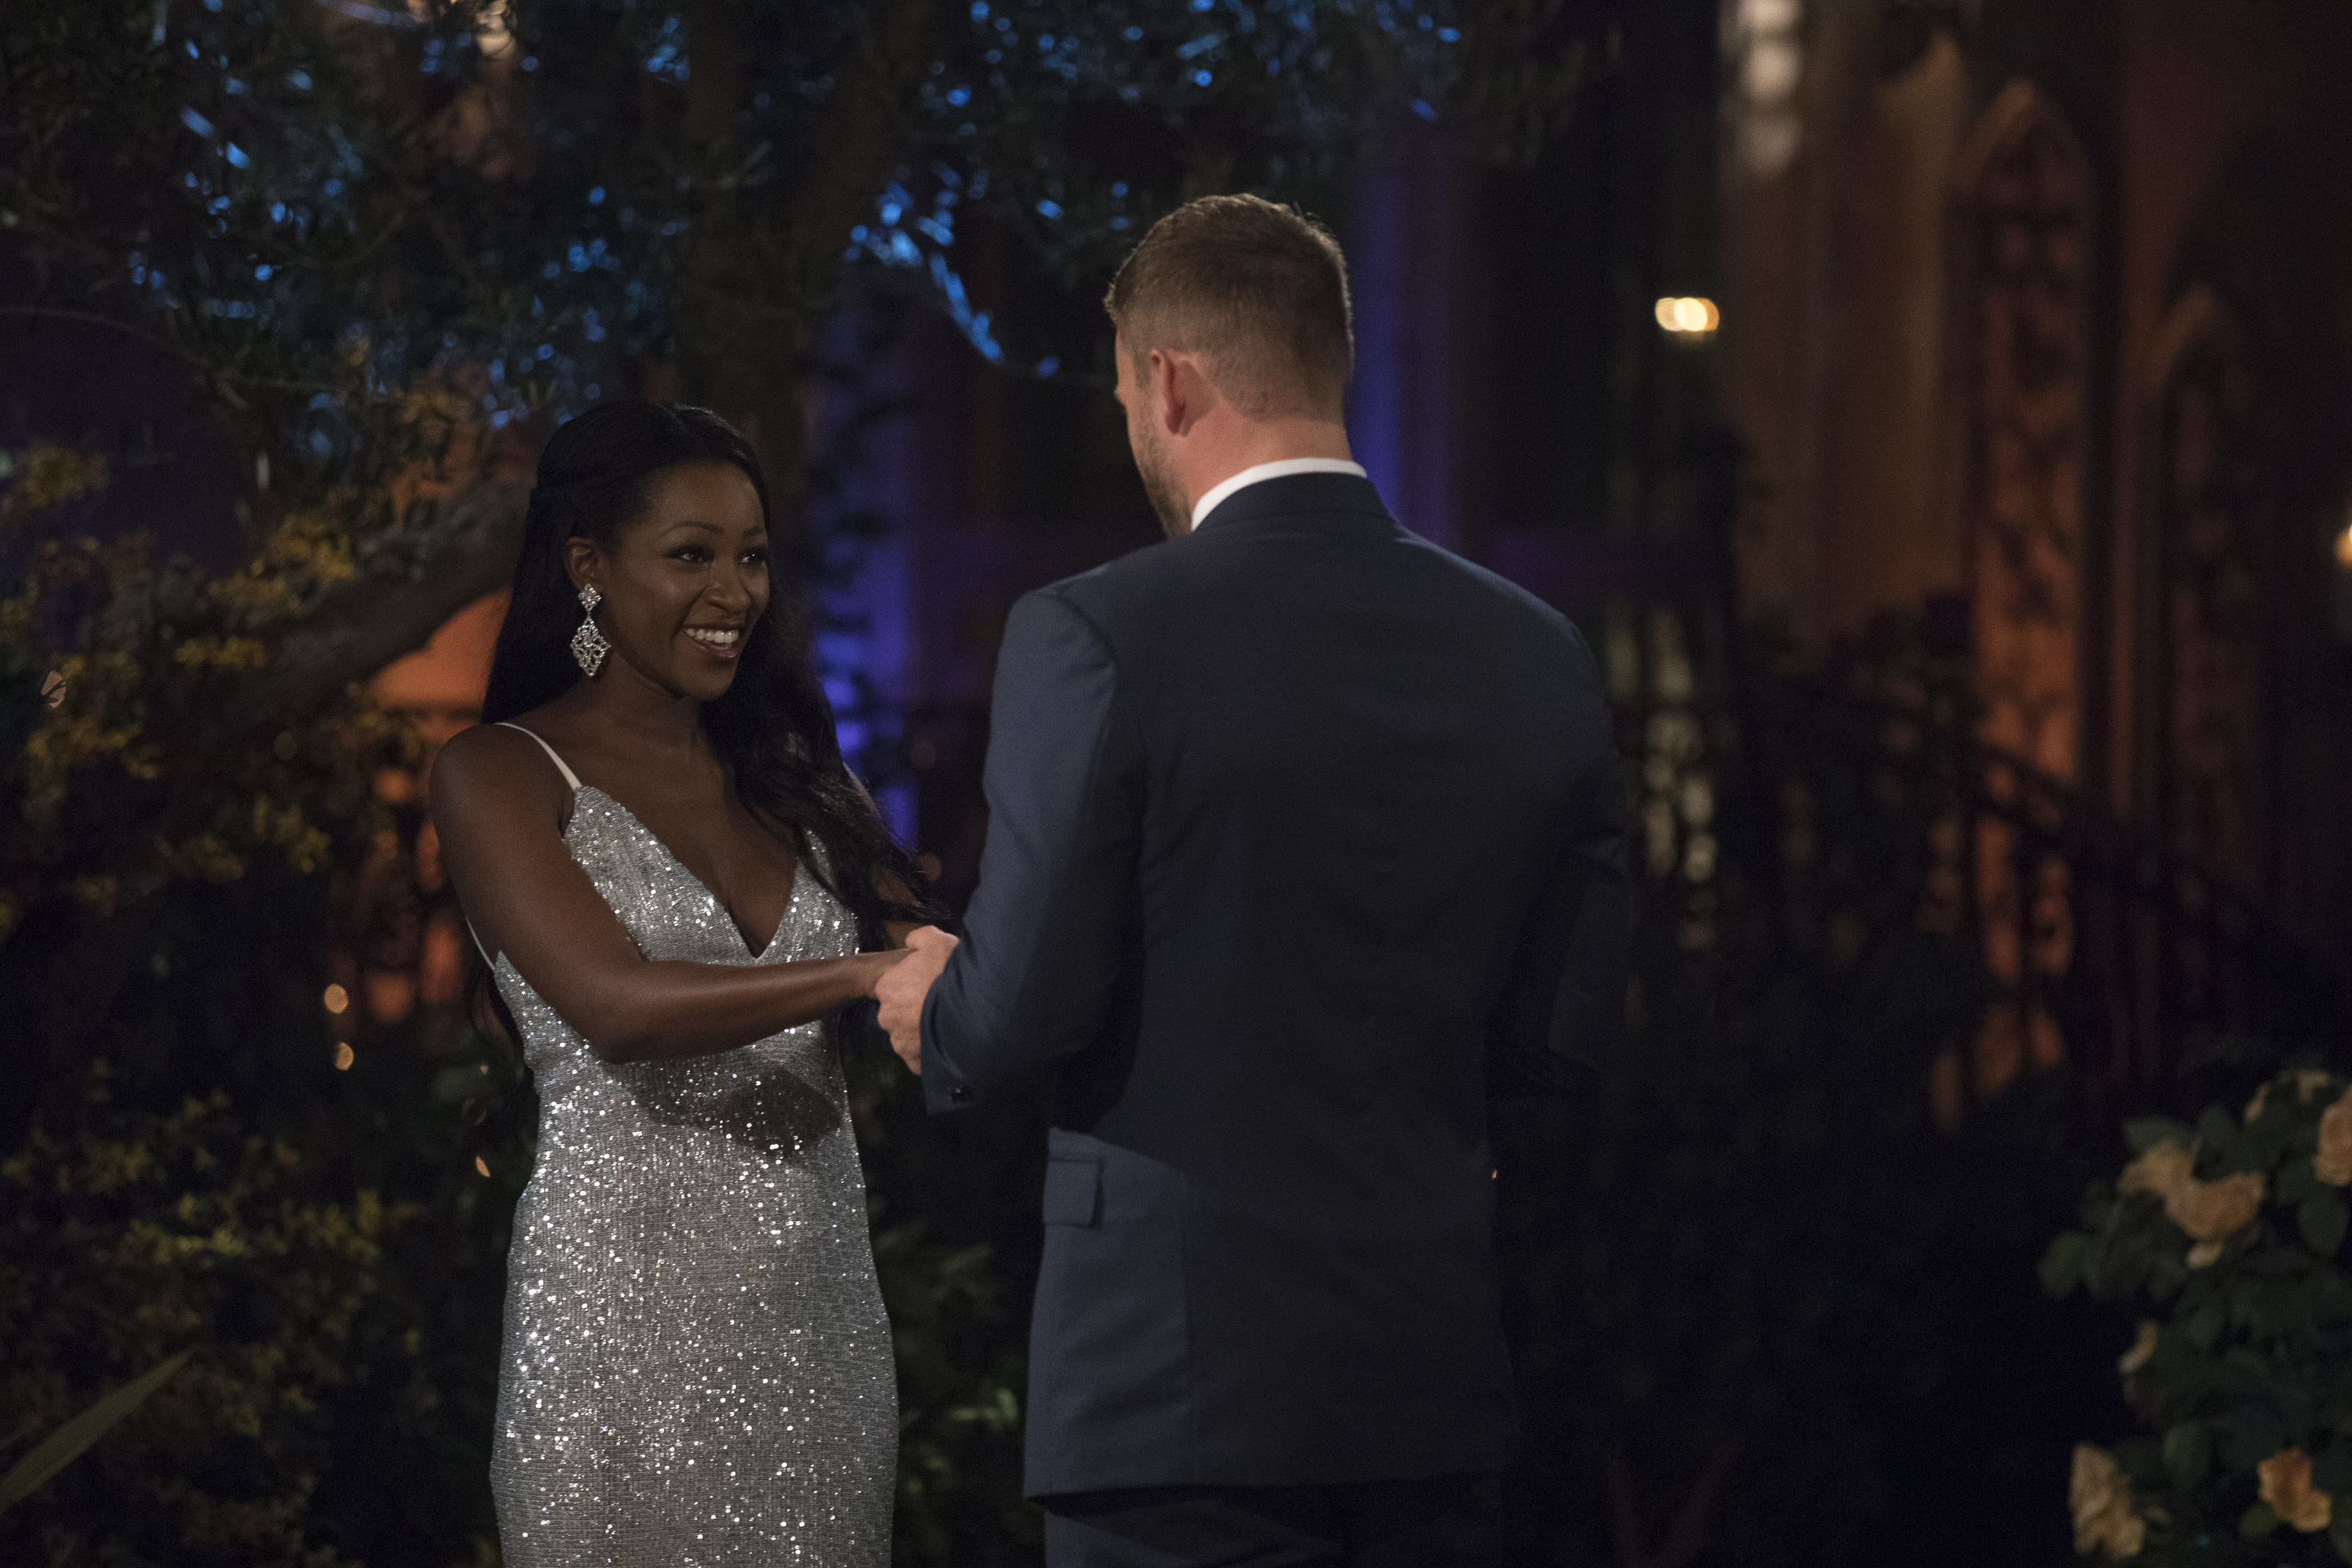 Bachelor 23 - Onyeka Ehie - Discussion - *Sleuthing Spoilers*  150365_0951